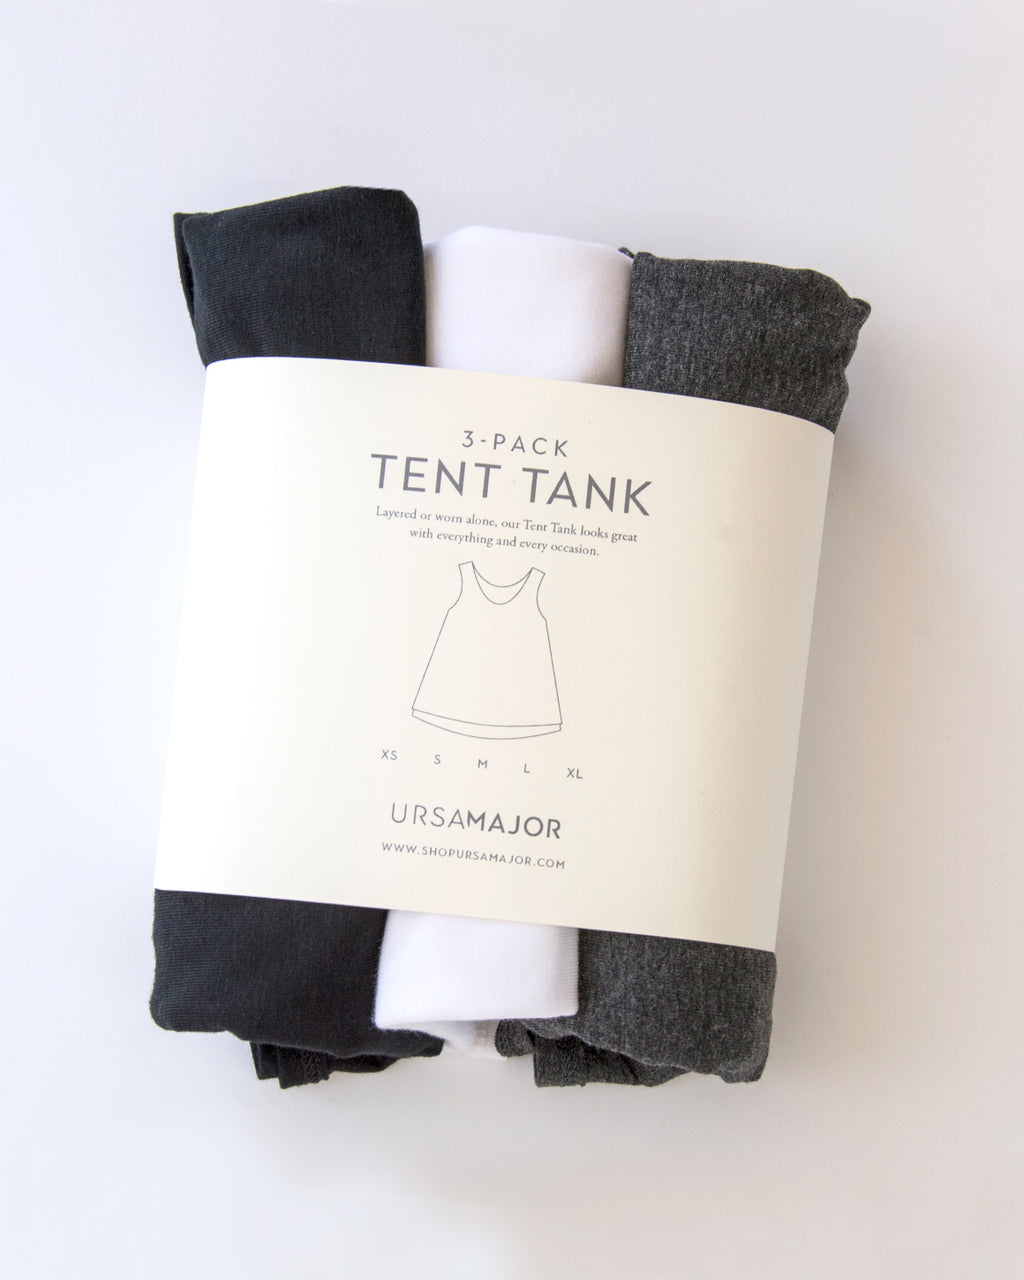 3-Pack Tent Tank / Black, White & Charcoal